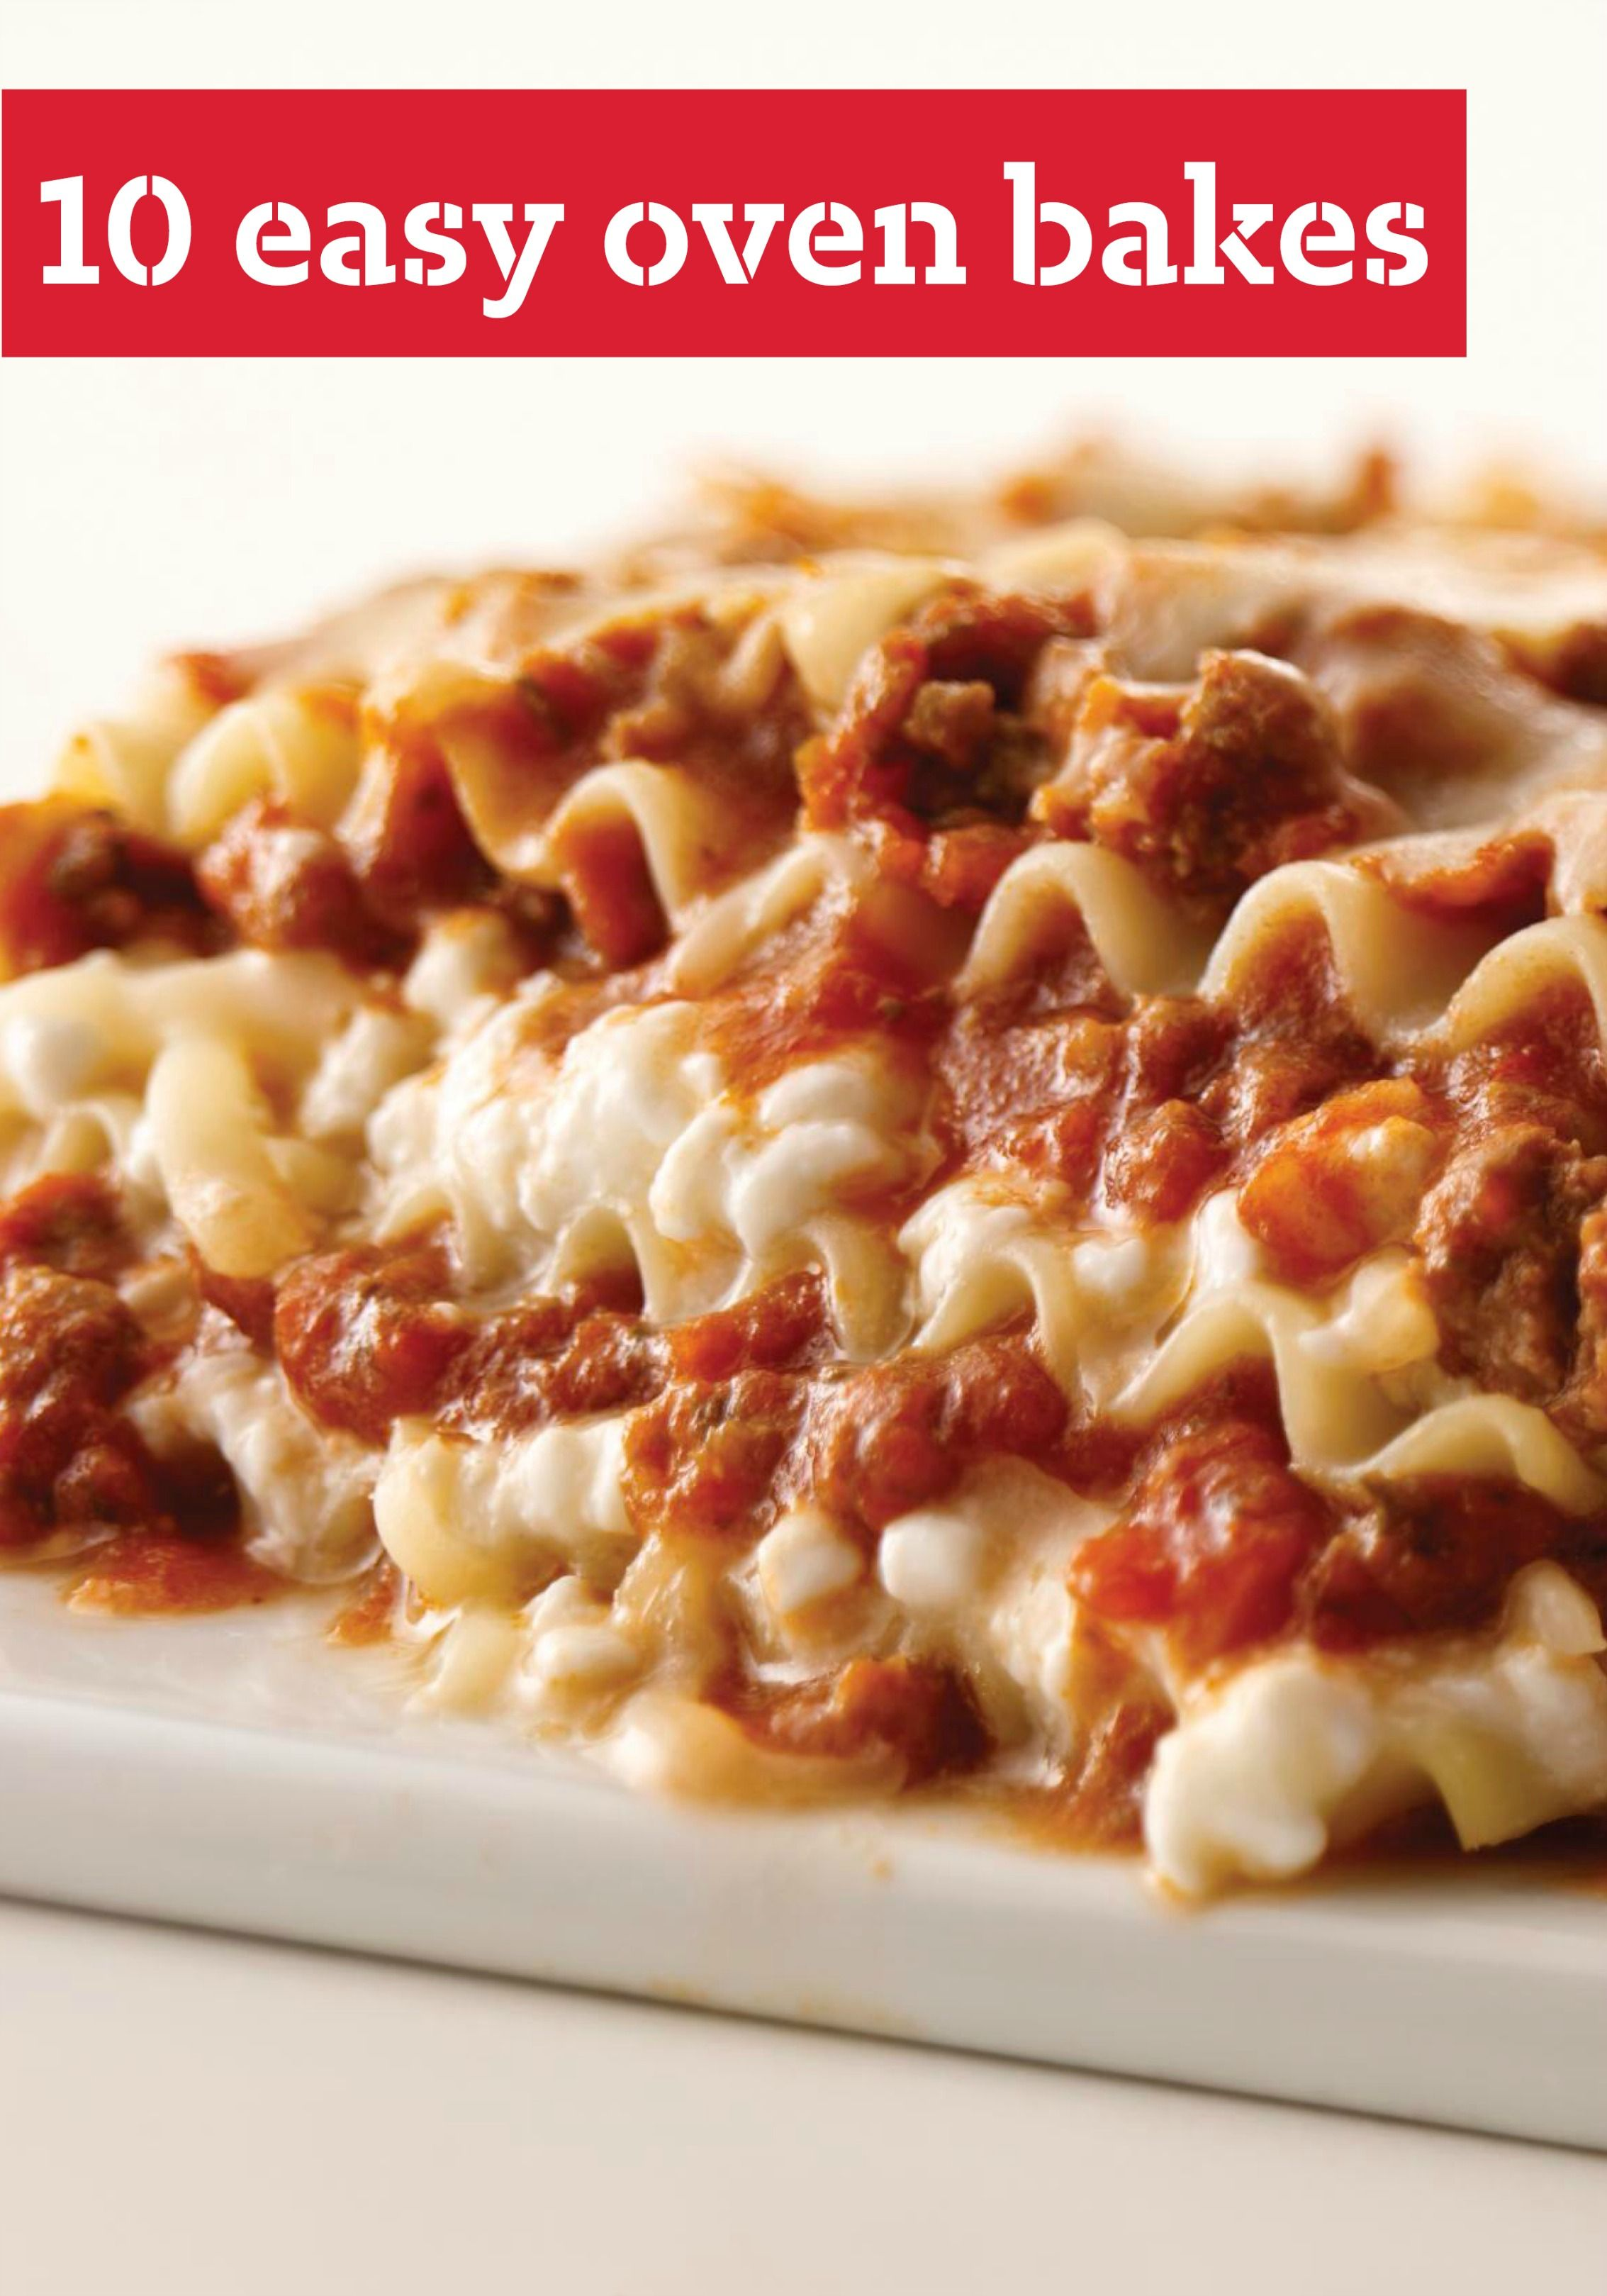 10 easy oven bakes you could make a casserole without cheese 13 easy oven bakes cheesy creamy gooey deliciousness is what a one dish bake is all about and every single one of these recipes delivers just that forumfinder Images